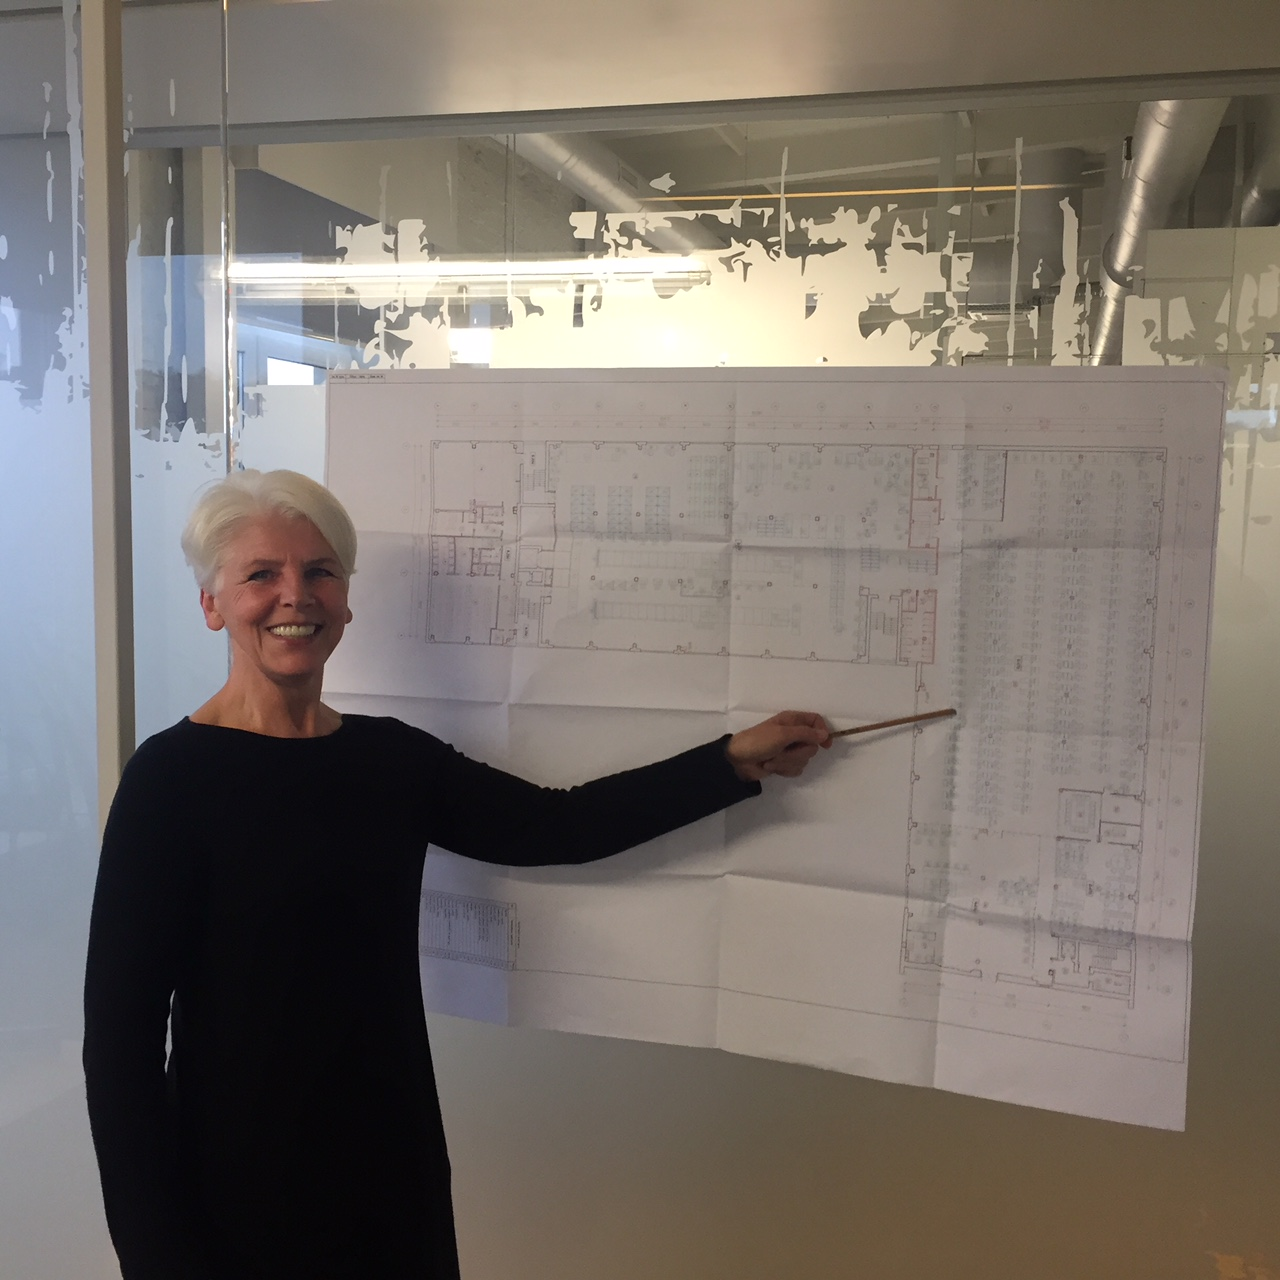 Eugenija with drawing of LTP new factory in Ukraine, which opened in December 2017